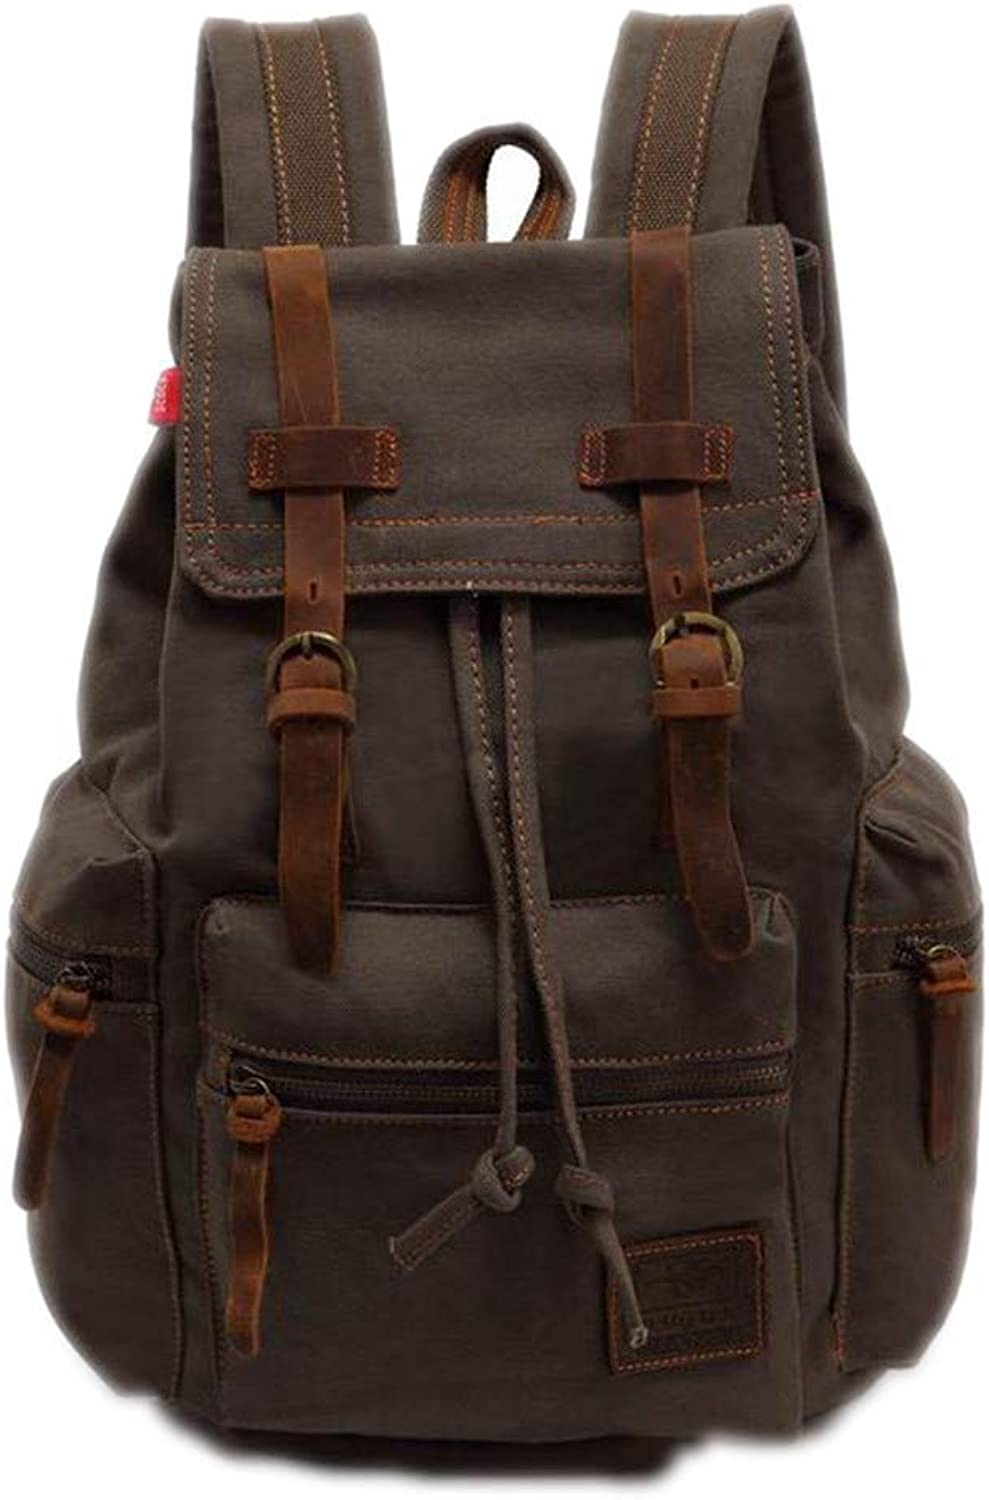 Campus Backpack Men's Backpack Vintage Canvas Men's Travel Bags Large Capacity Laptop Backpack Backbag ArmyGreen 15 Inches School Rucksack (color   ArmyGreen, Size   15 Inches)